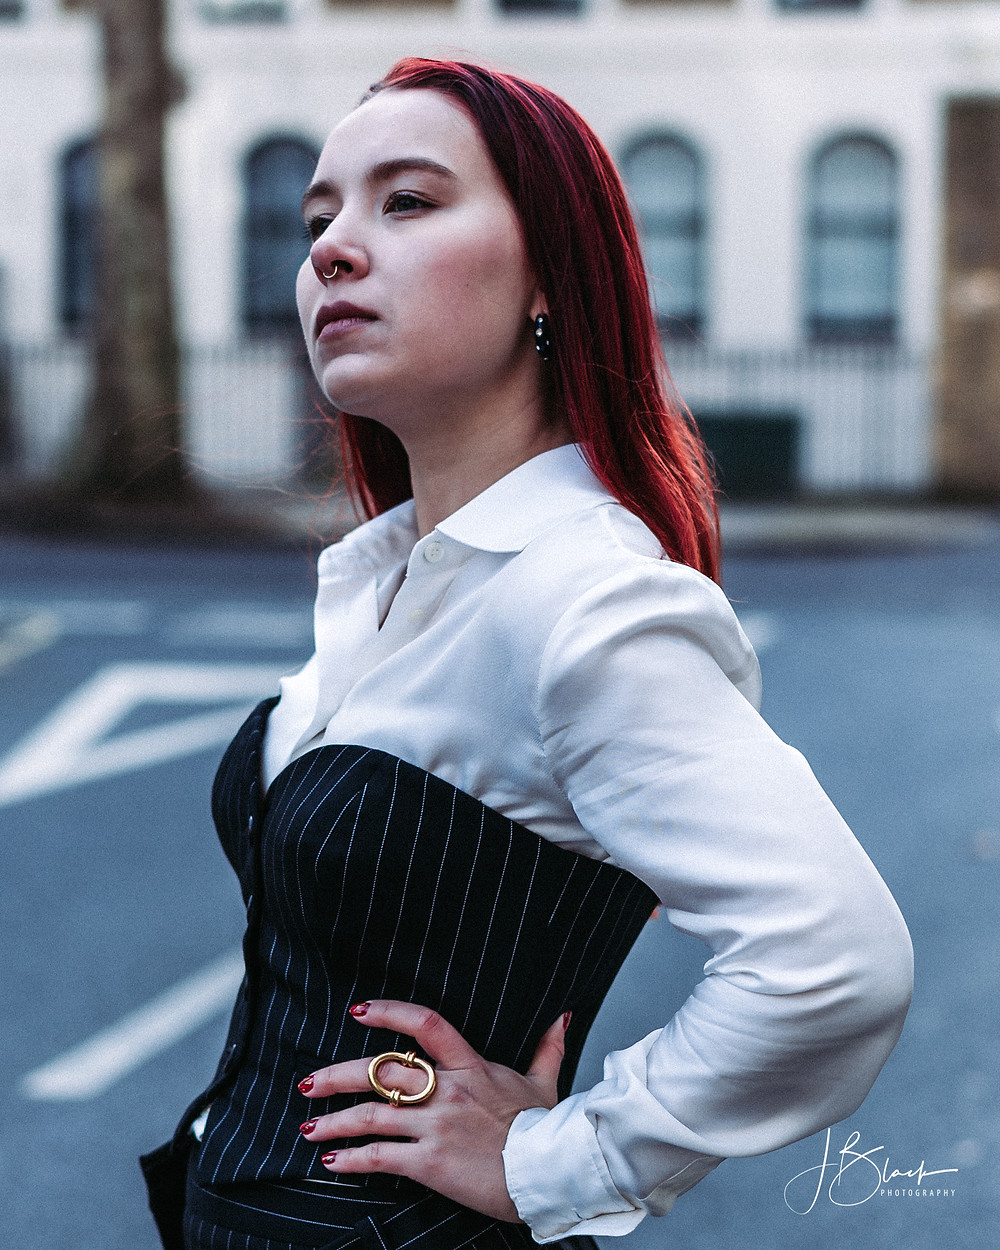 Tatiana dressed in a hite satin shirt and a pinstripe corset by Moschino.